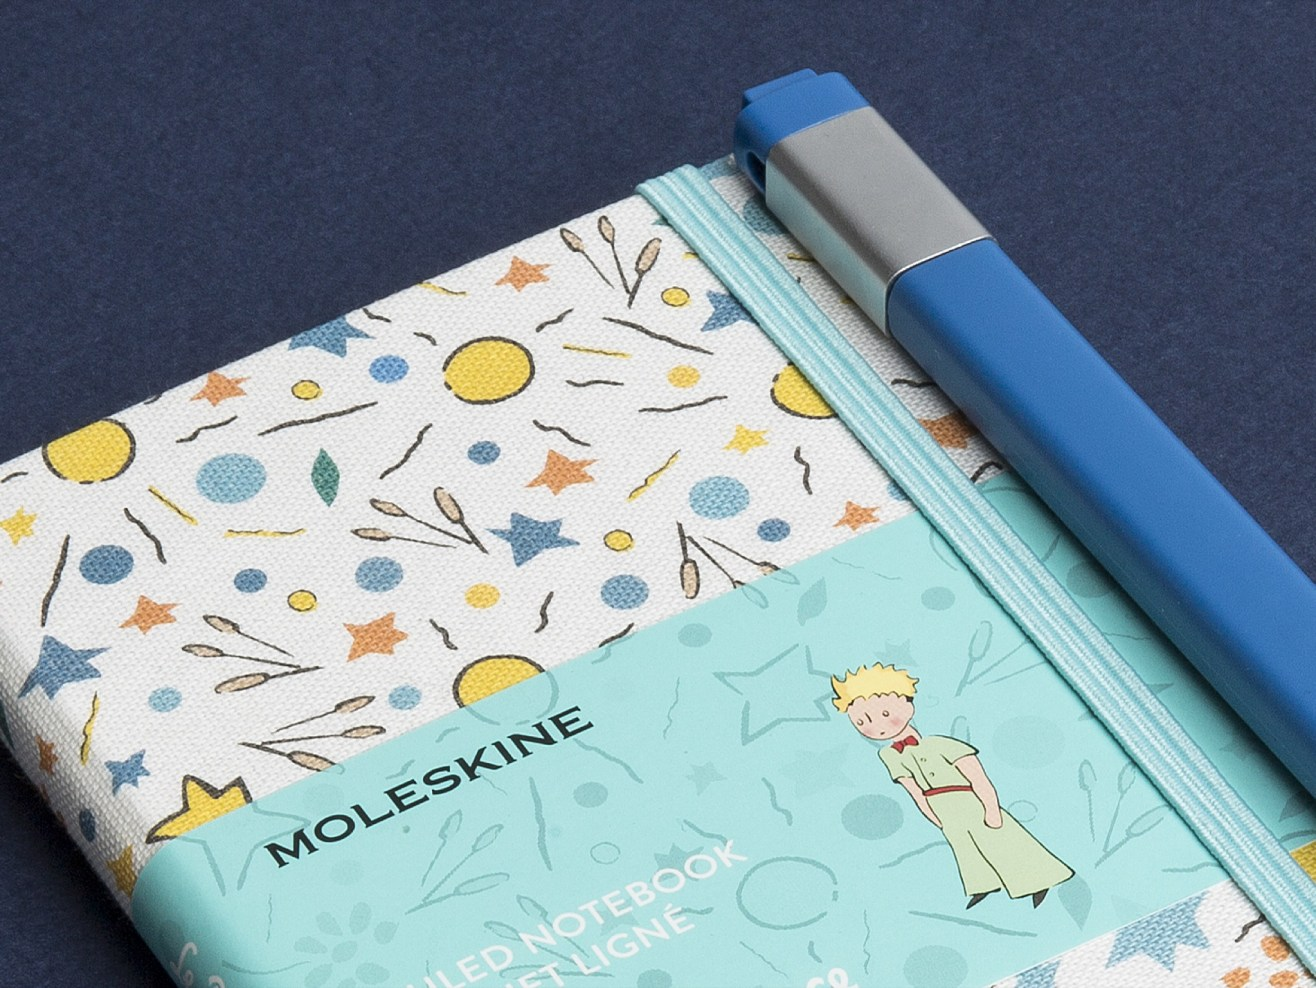 RS98920_Moleskine_Petit Prince_limited edition_Pocket_white_close up